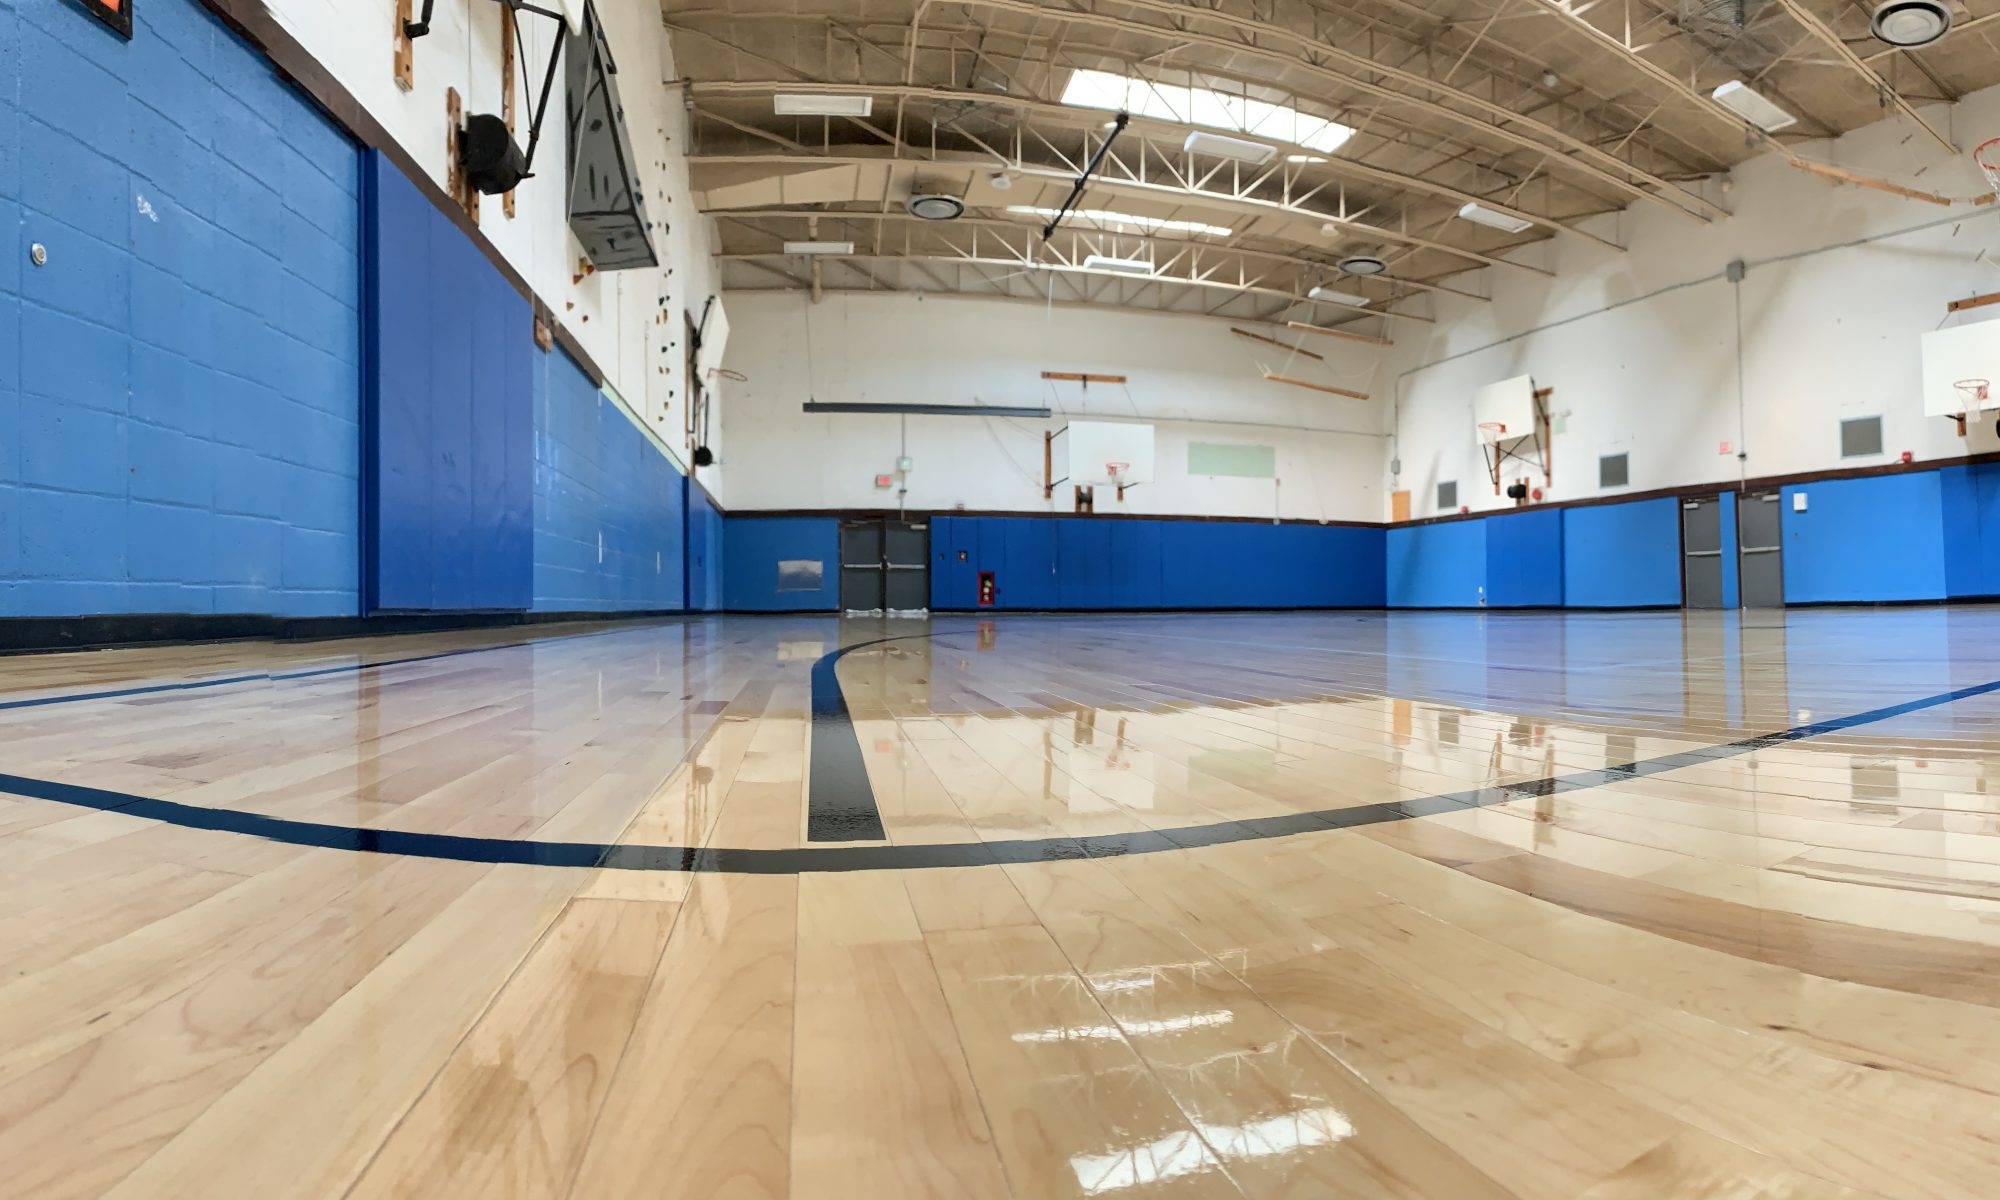 photo is of the new gym floor